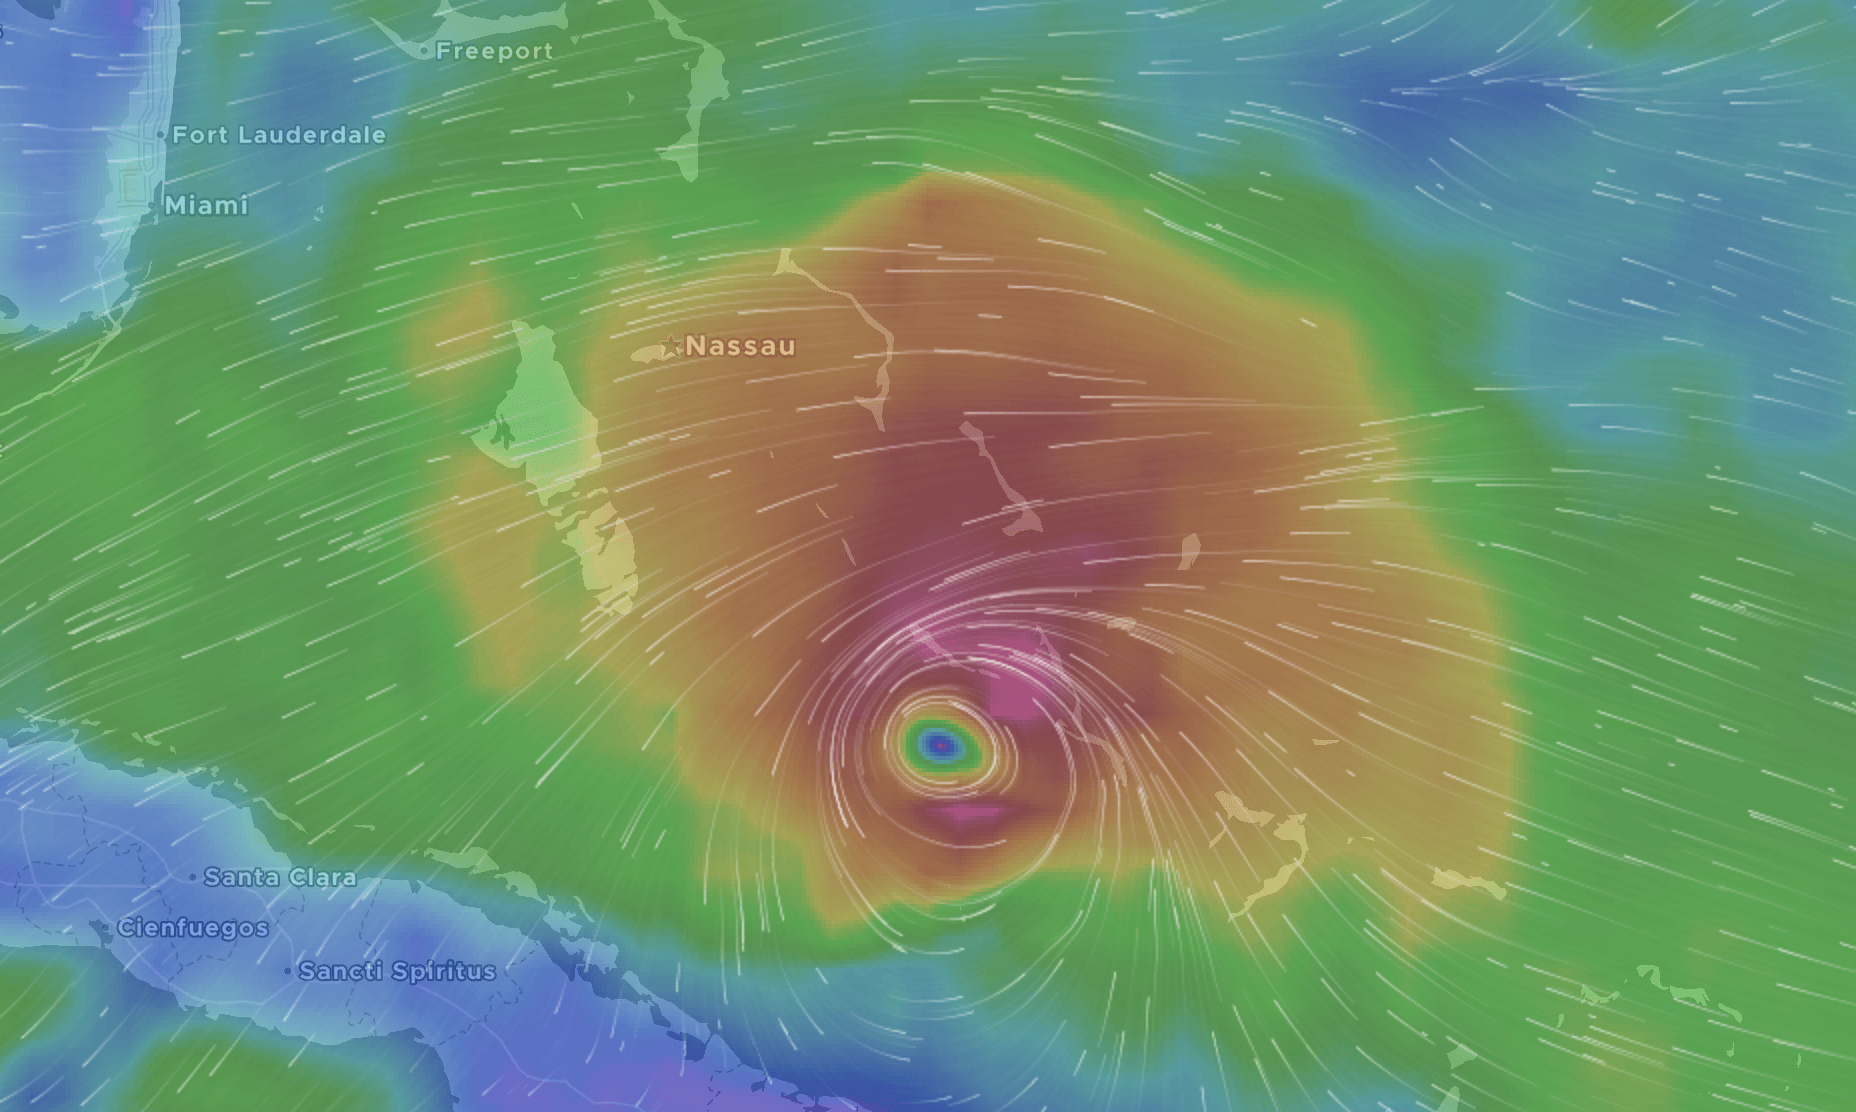 ISAIAS UPDATE: Long Island, Exuma undergoing strong winds